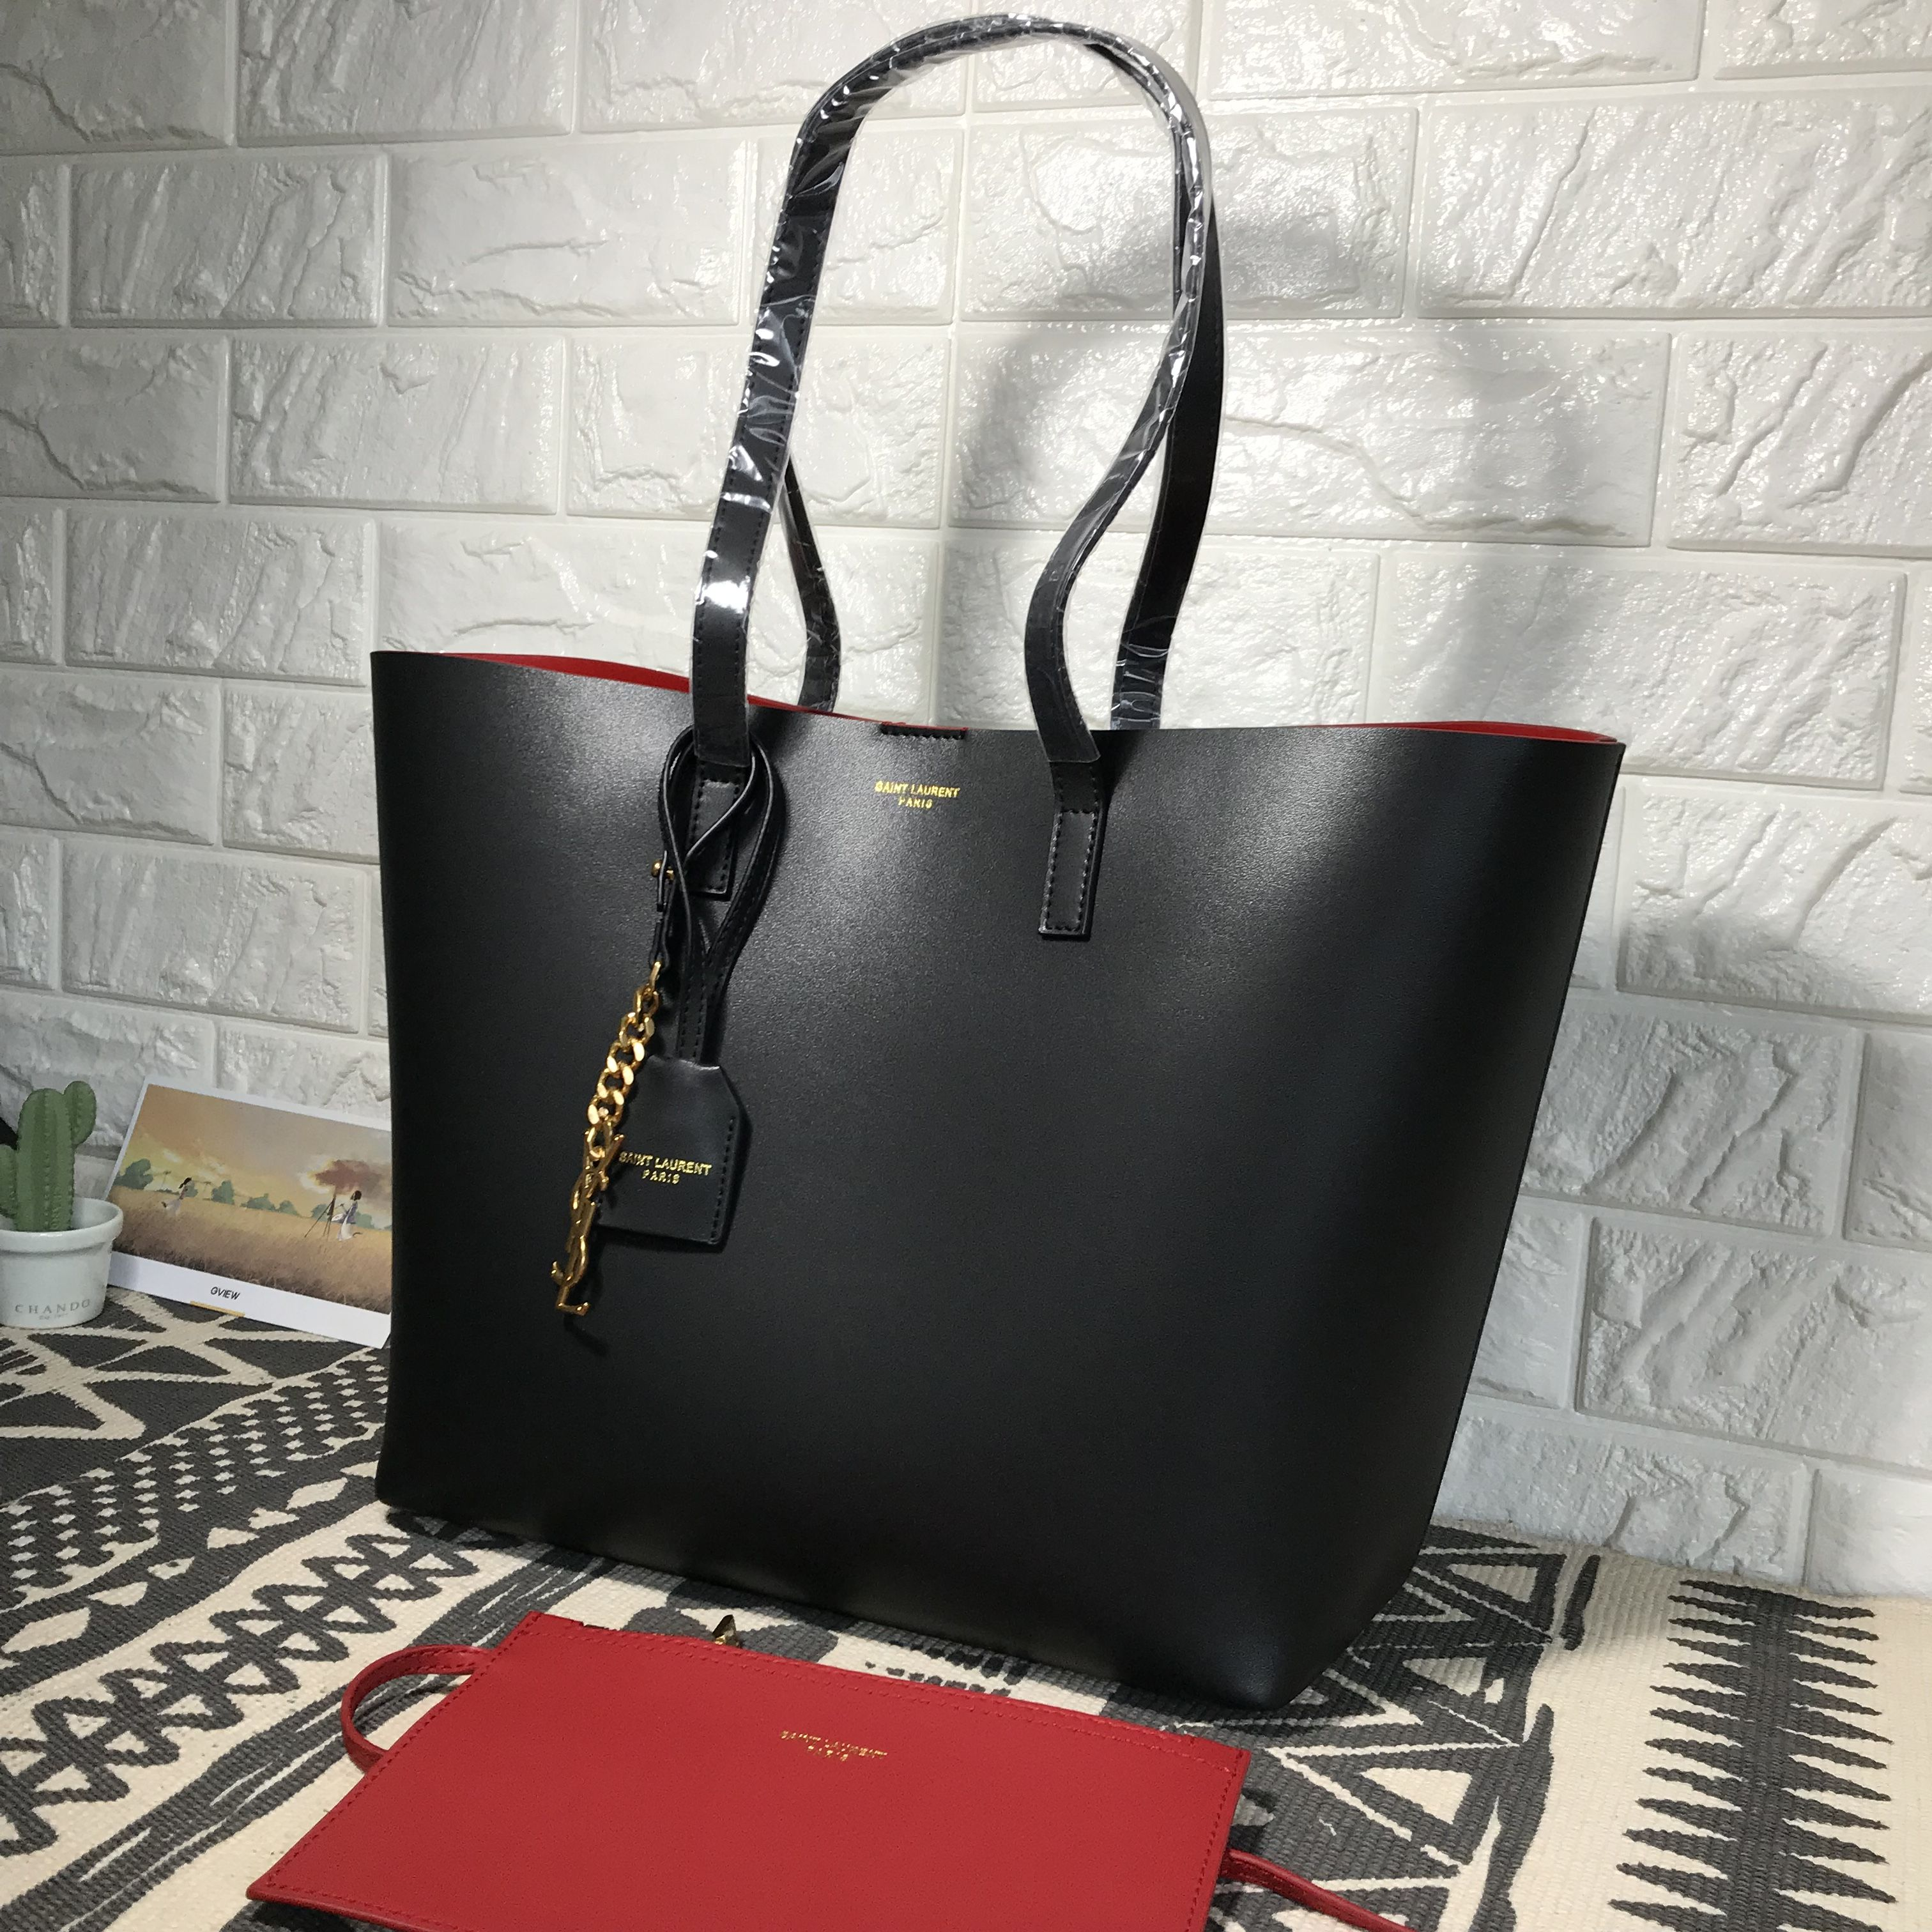 2187823dc4 Ysl Saint Laurent shopping tote bag black with red interior